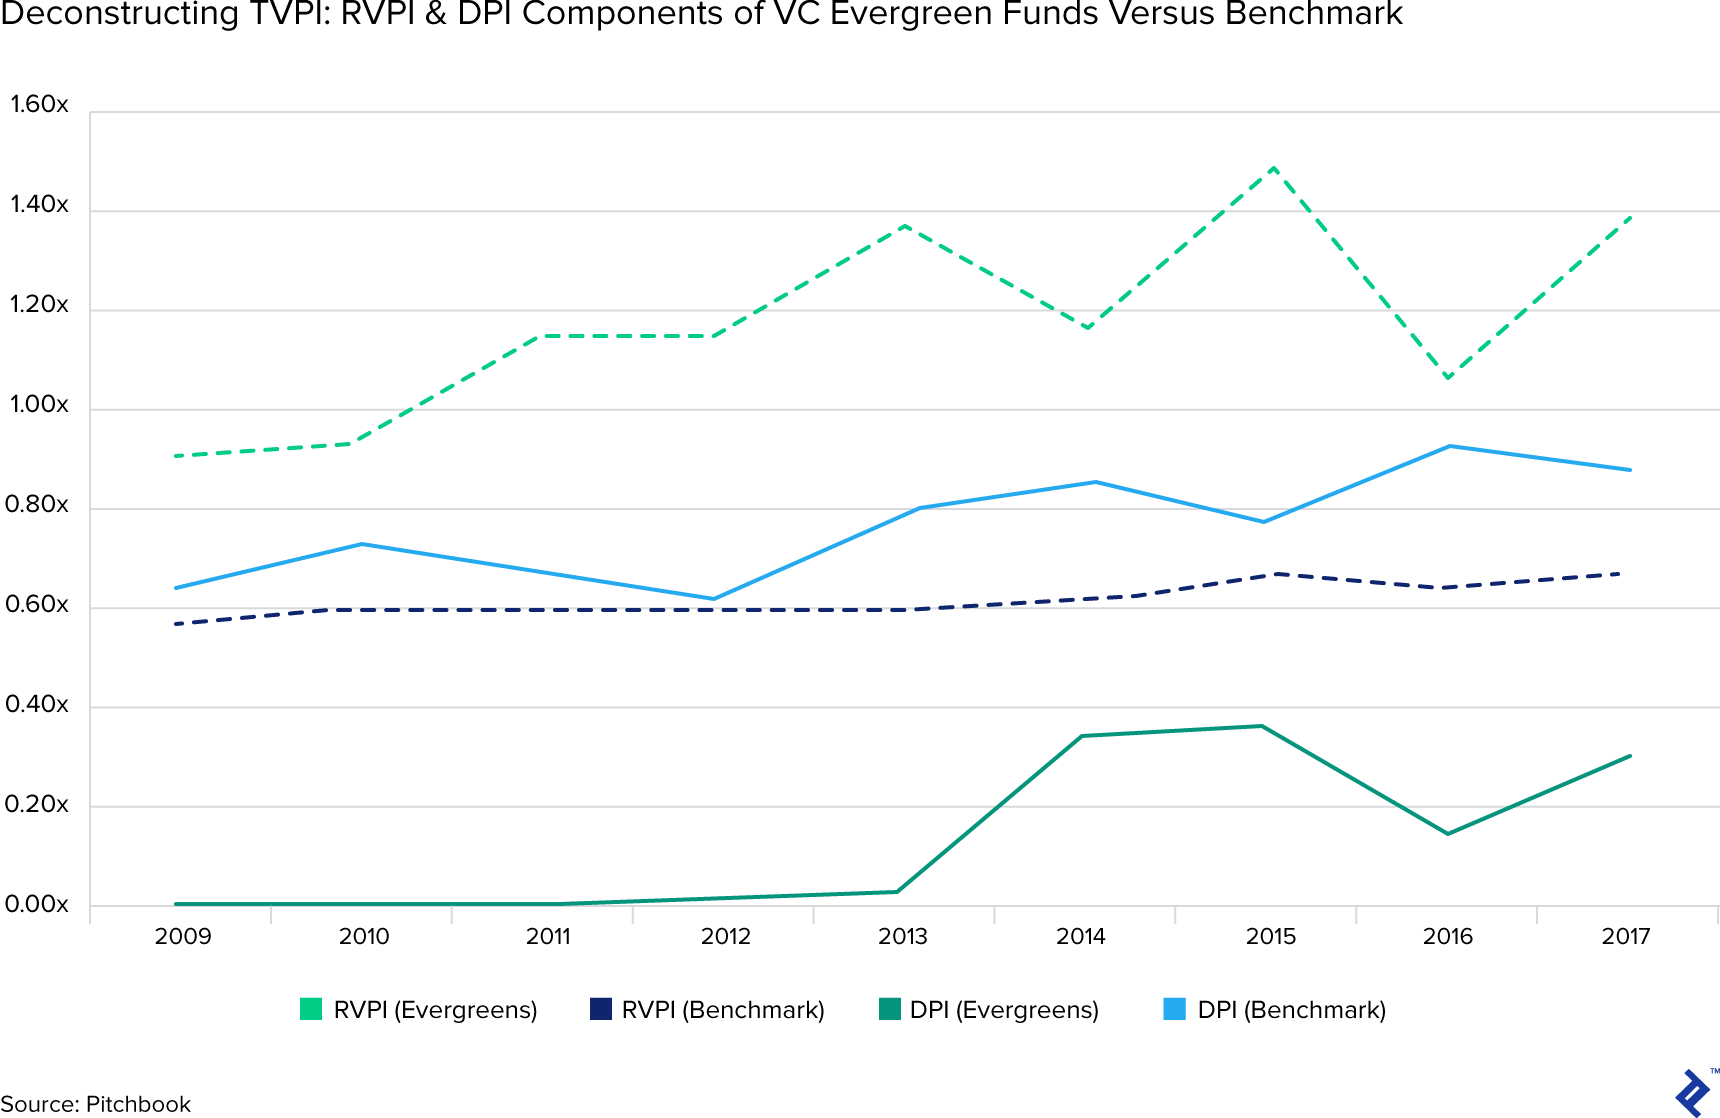 Deconstructing TVPI: RVPI and DPI components of VC evergreen funds versus benchmark